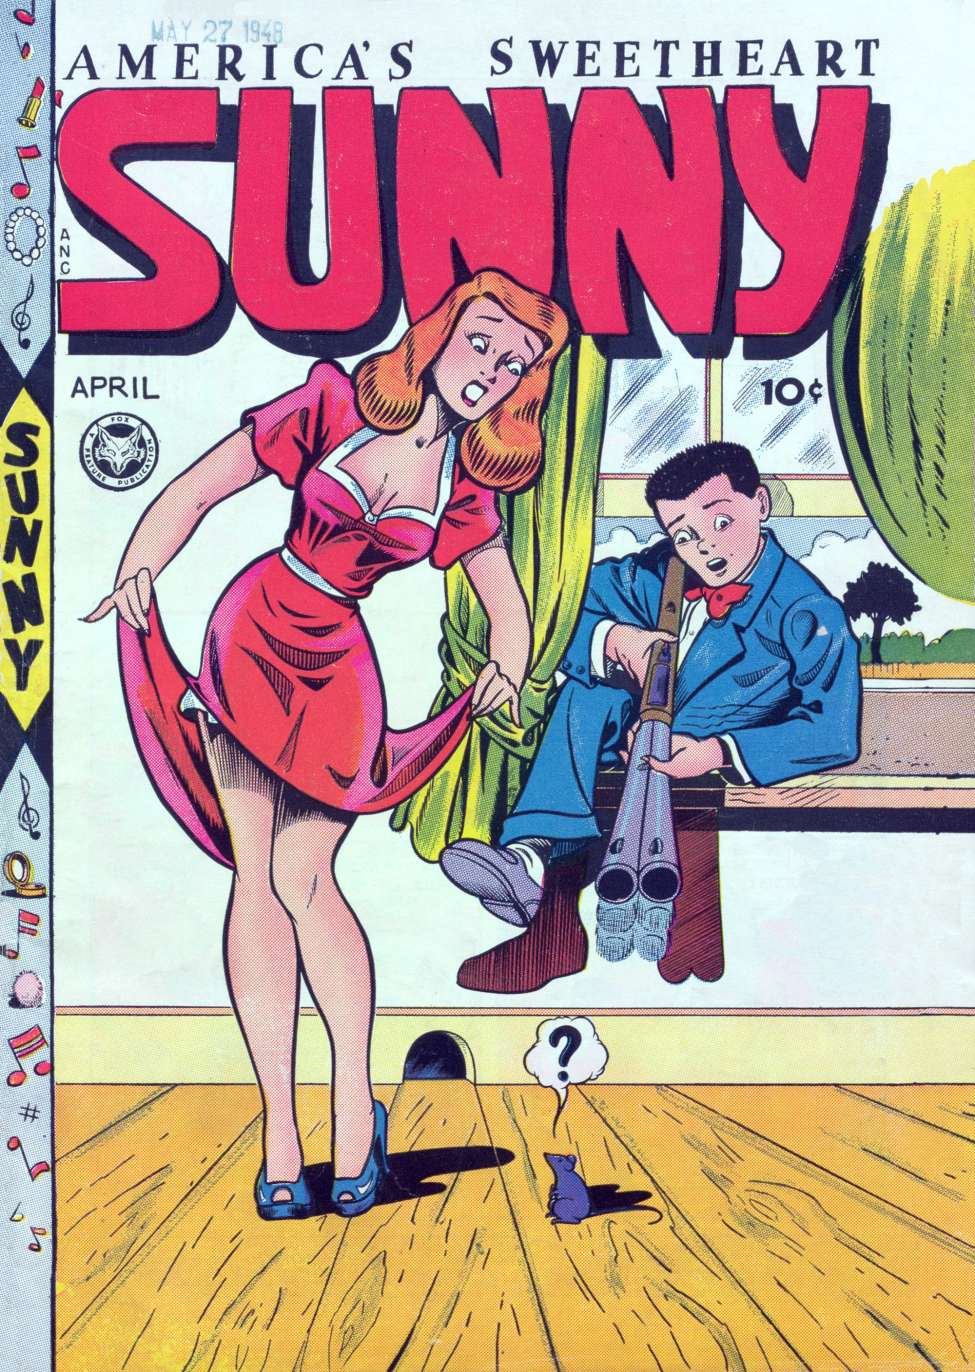 Comic Book Cover For Sunny [Sunny, America's Sweetheart] #13